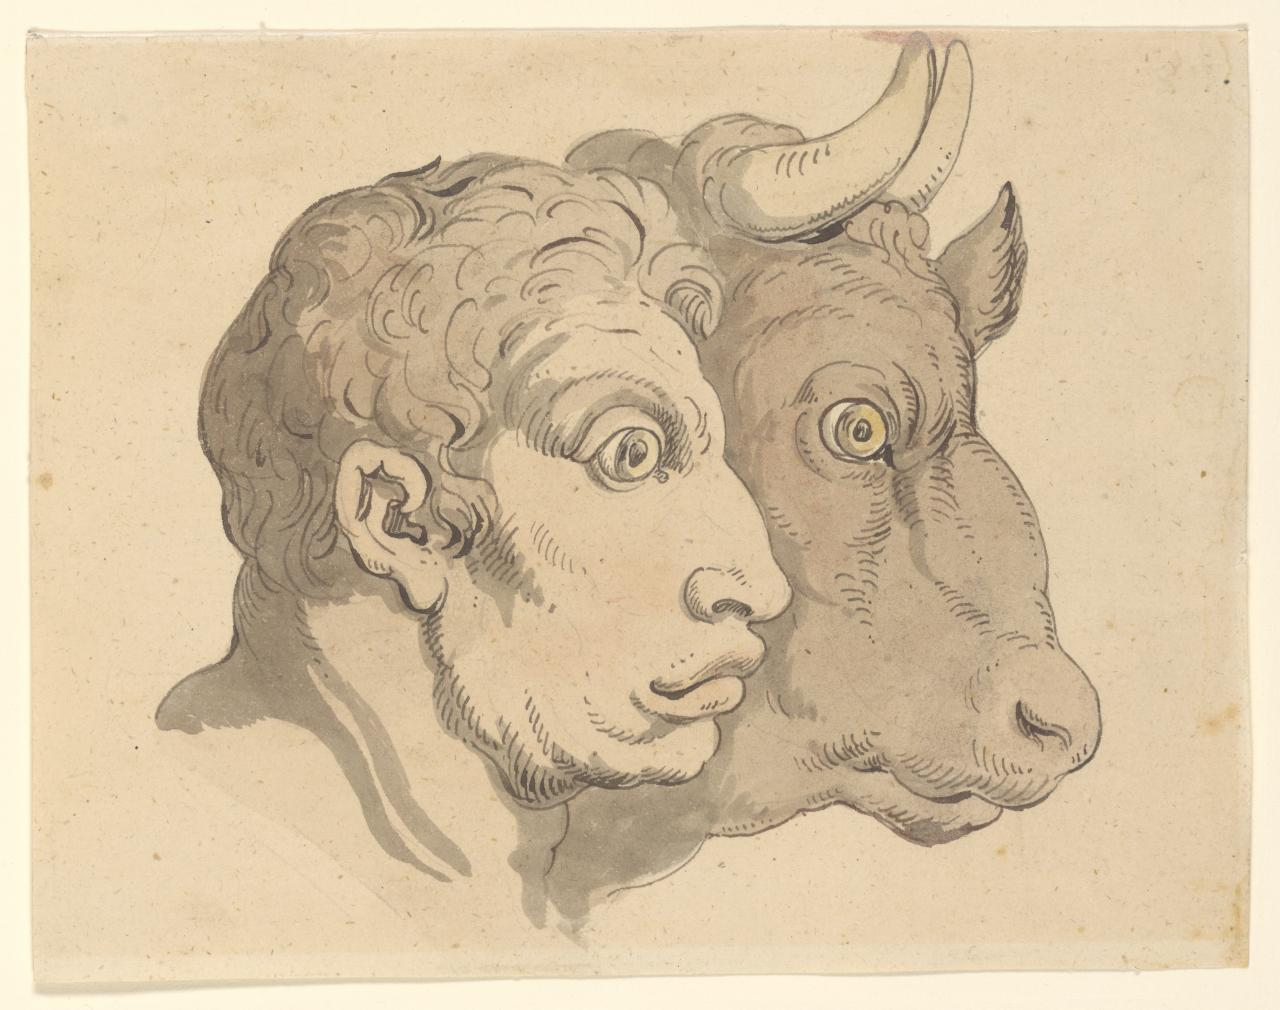 Grotesque heads (Human head and bull's head)